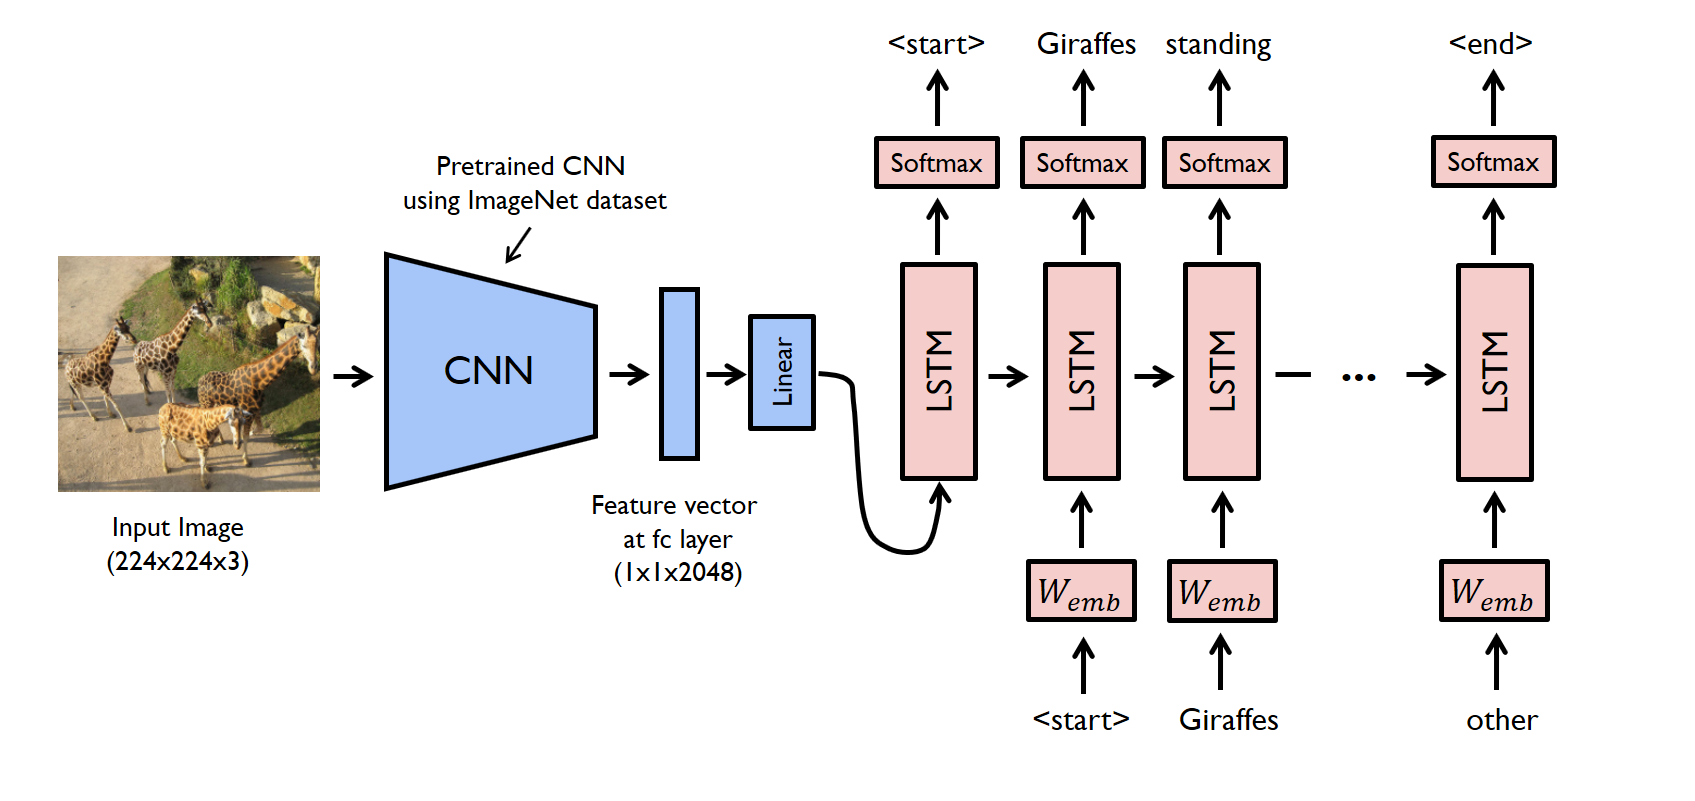 Automatic Image Captioning using Deep Learning (CNN and LSTM) in PyTorch